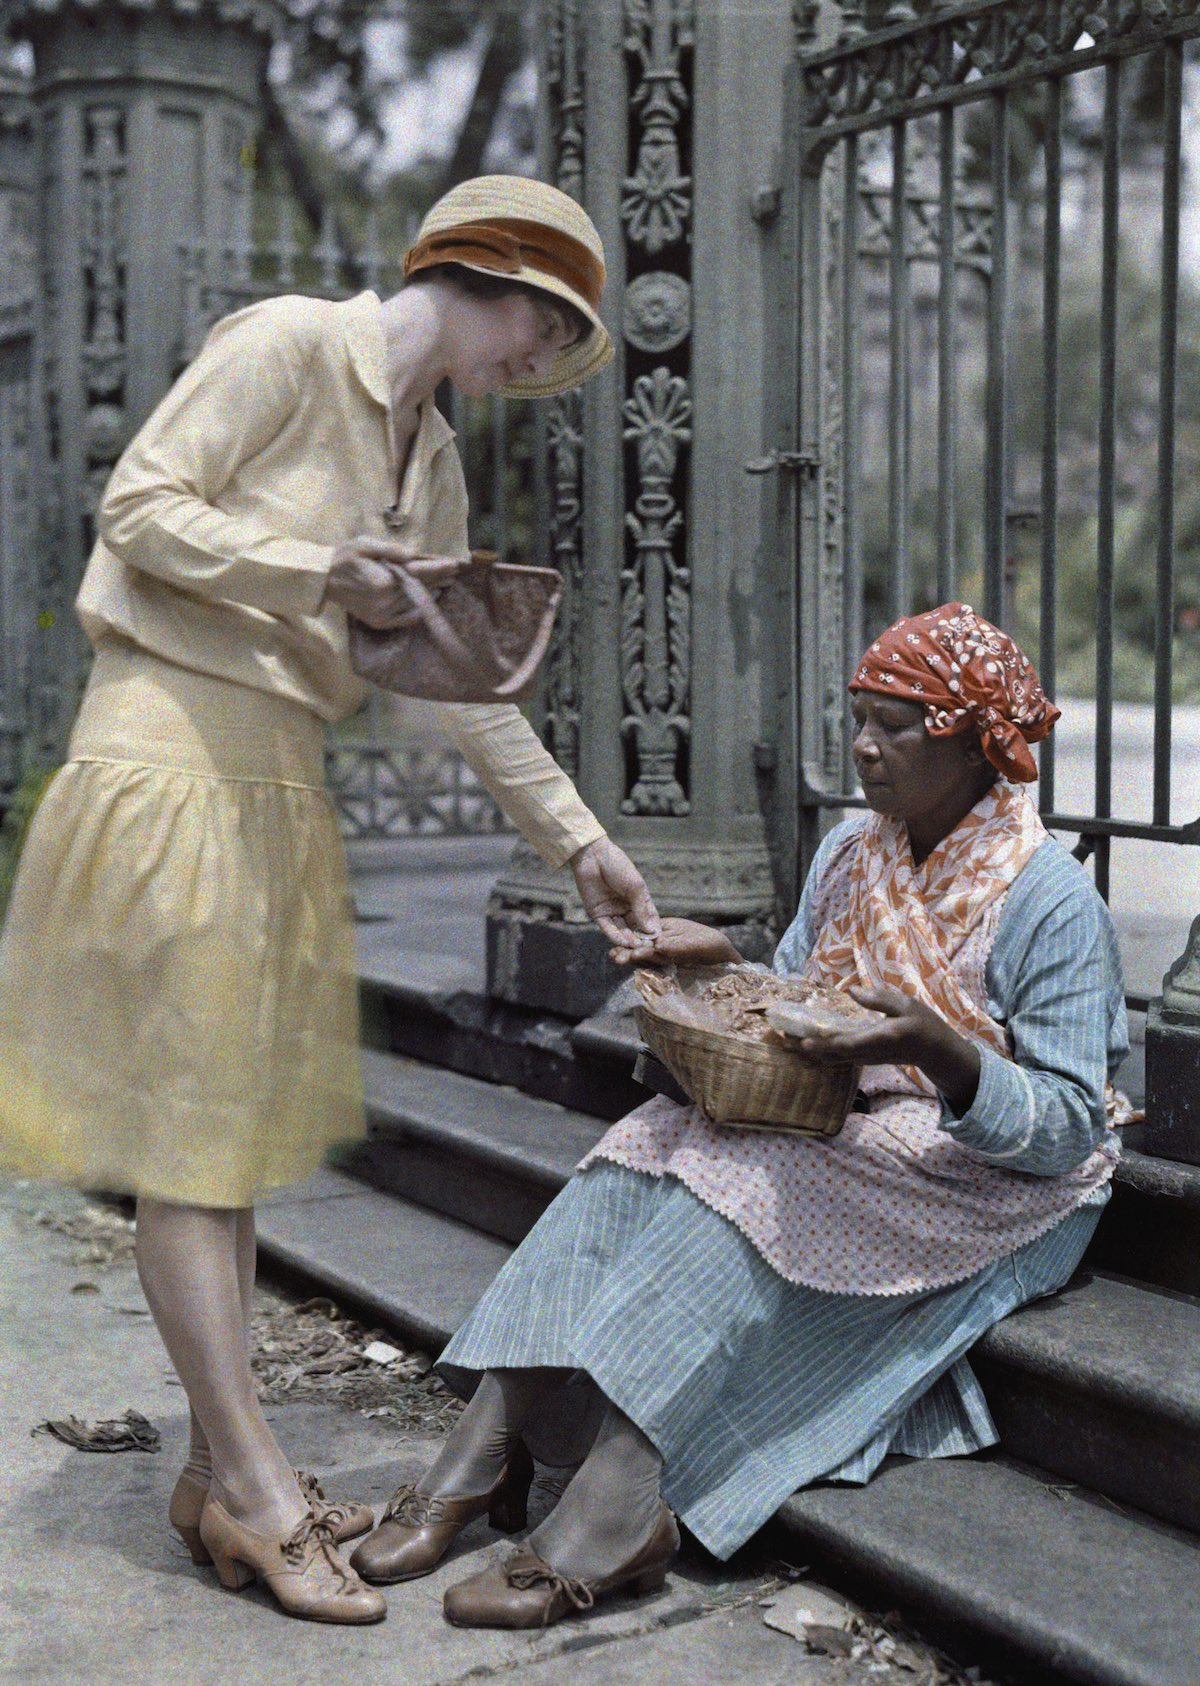 1929c New Orleans, Louisiana - A woman sitting on stone steps in The French Quarter sells pralines Wisherd